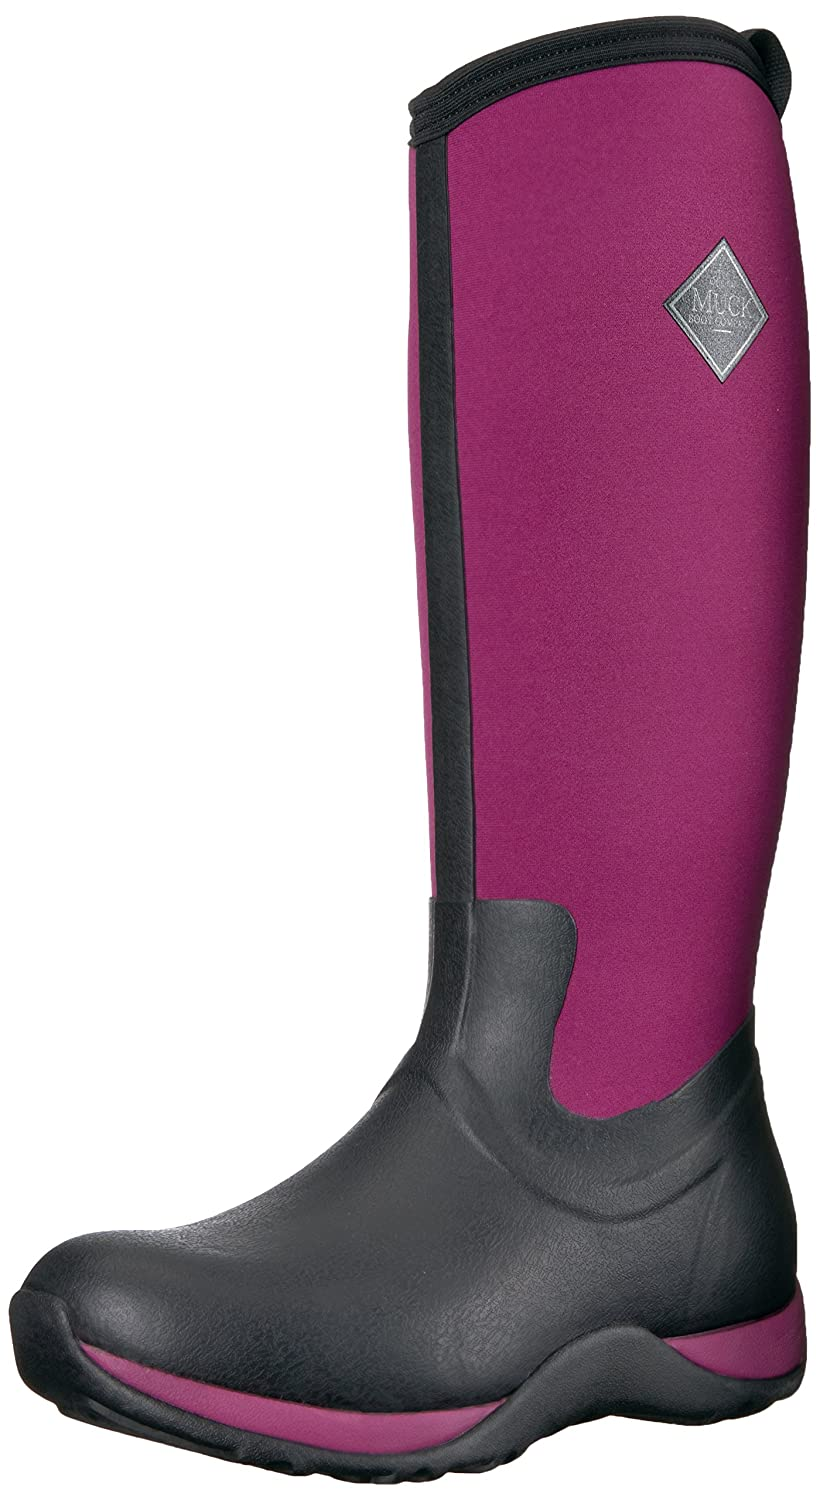 Muck Boot Women's Arctic Adventure Tall Snow Boot B00BN610IG 11 B(M) US|Black/Maroon